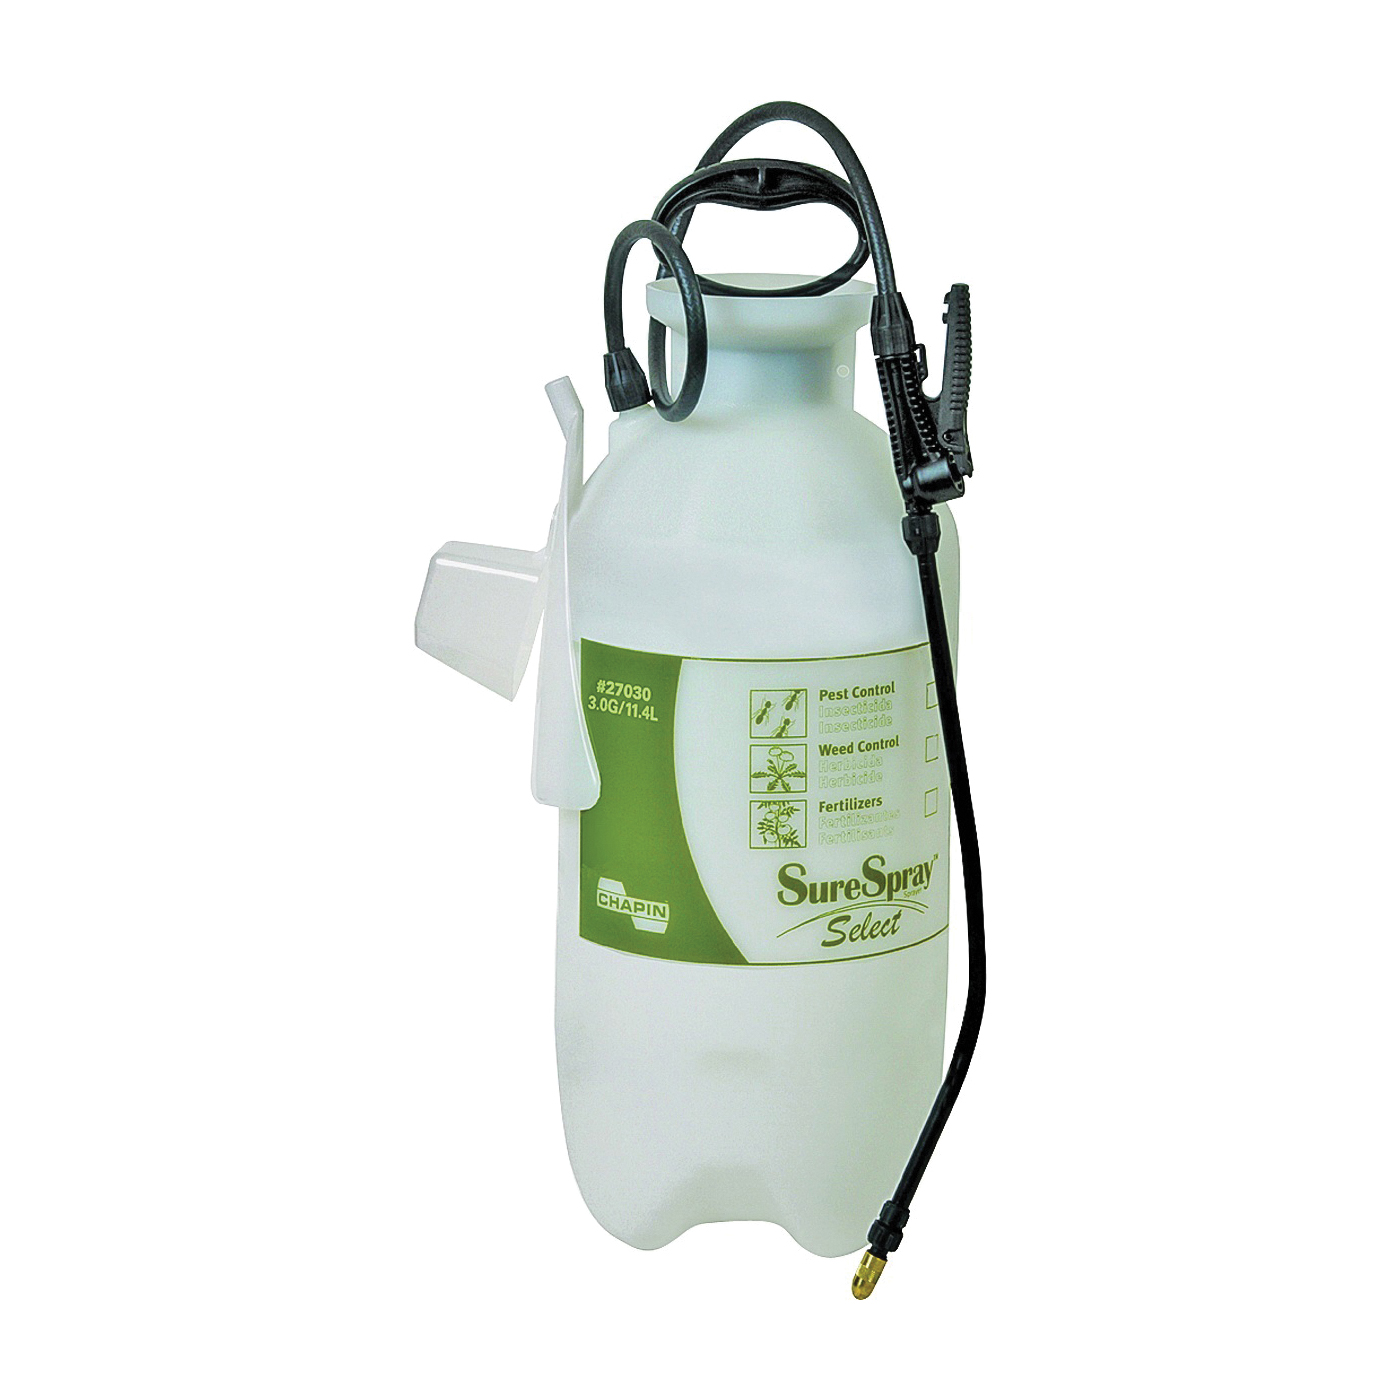 Picture of CHAPIN SureSpray 27030 Compression Sprayer, 3 gal Tank, Poly Tank, 34 in L Hose